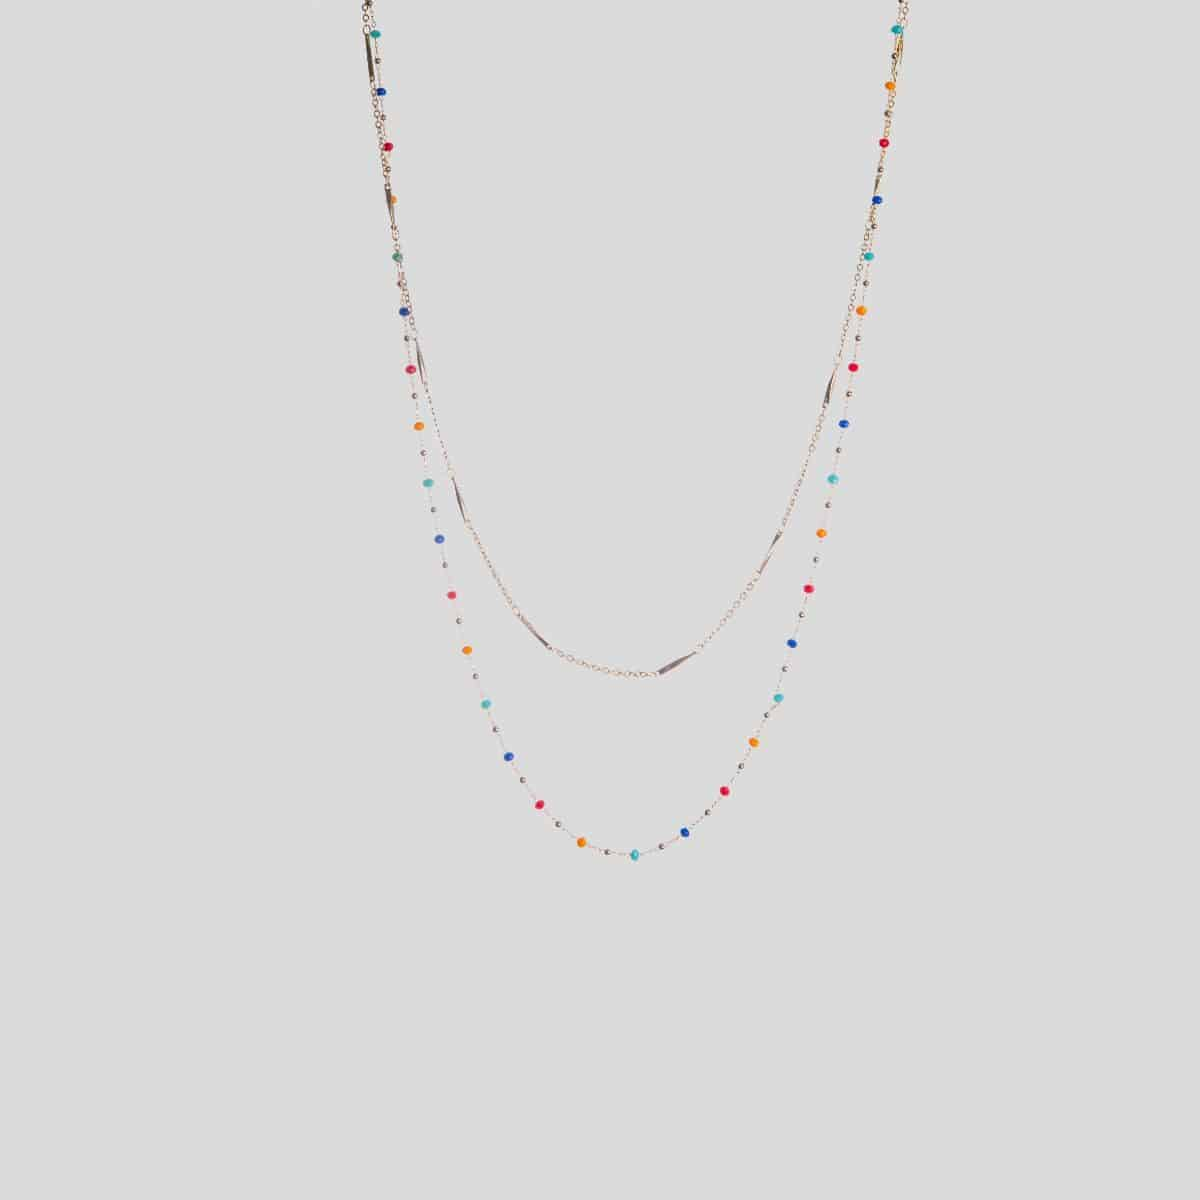 Seoul long necklace of two fine golden chains, the longest of which is interspersed with multi-colored faceted crystals